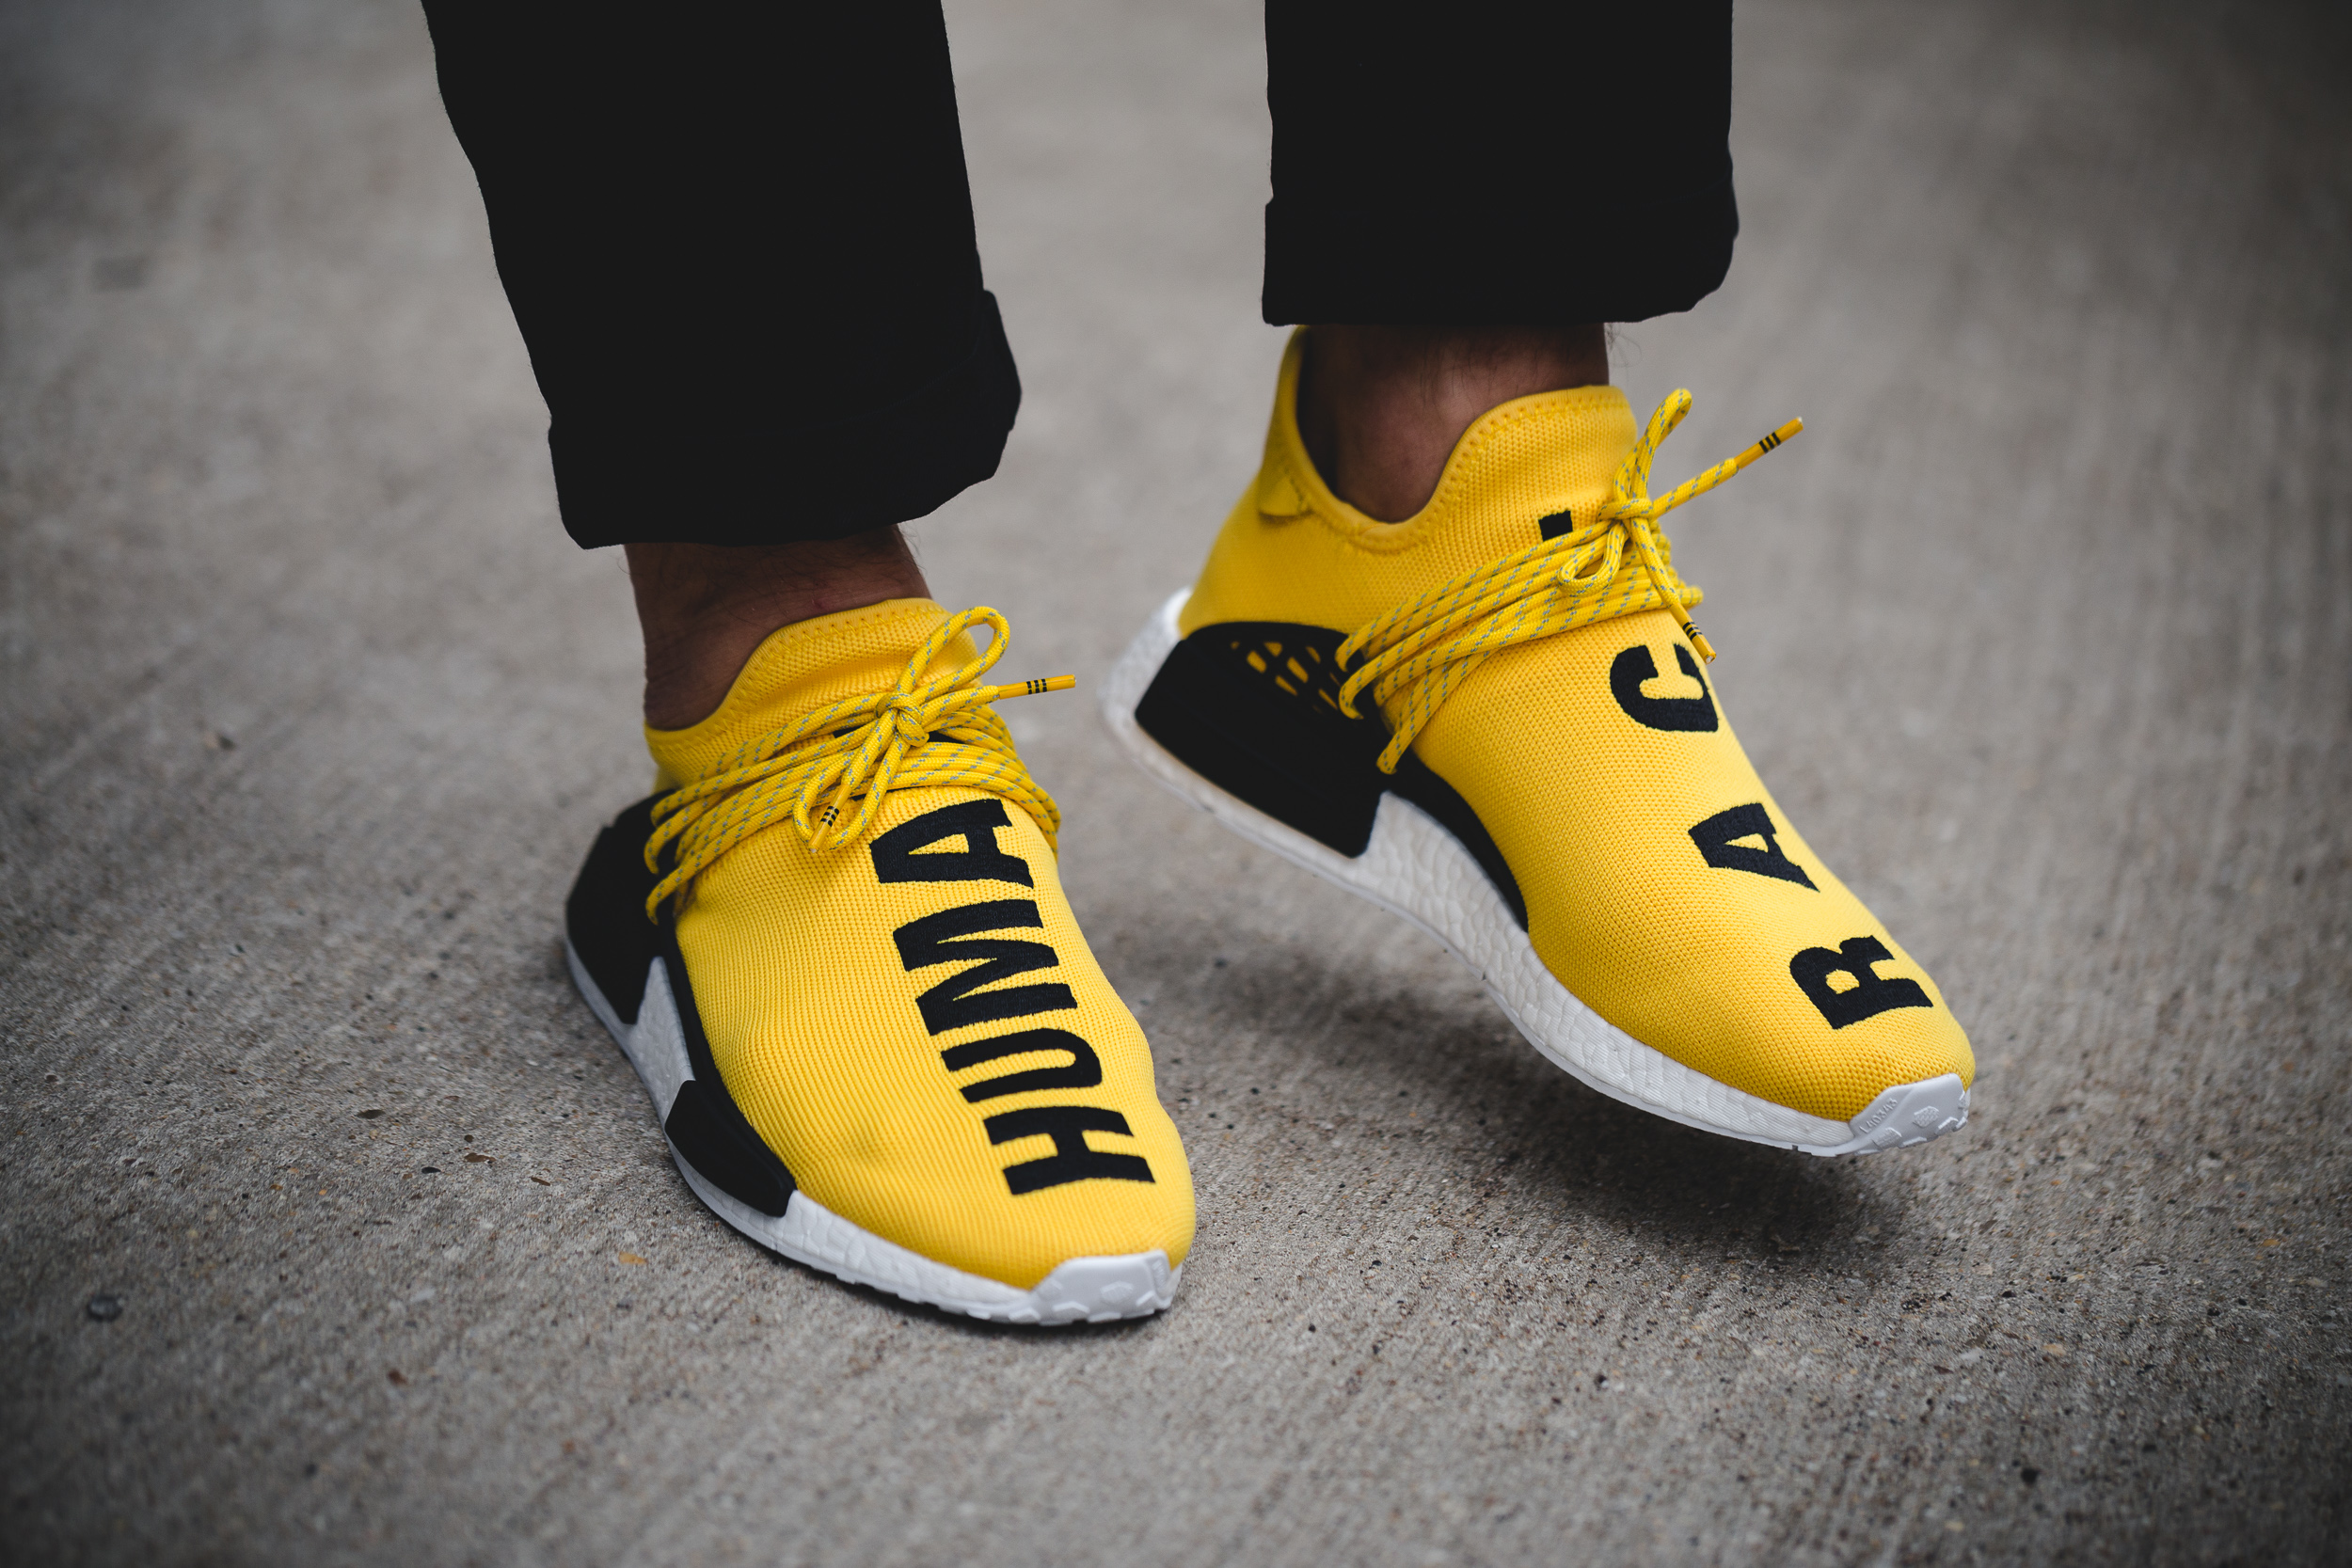 le dernier 73f2b 73eef adidas Originals x Pharell Williams HU NMD